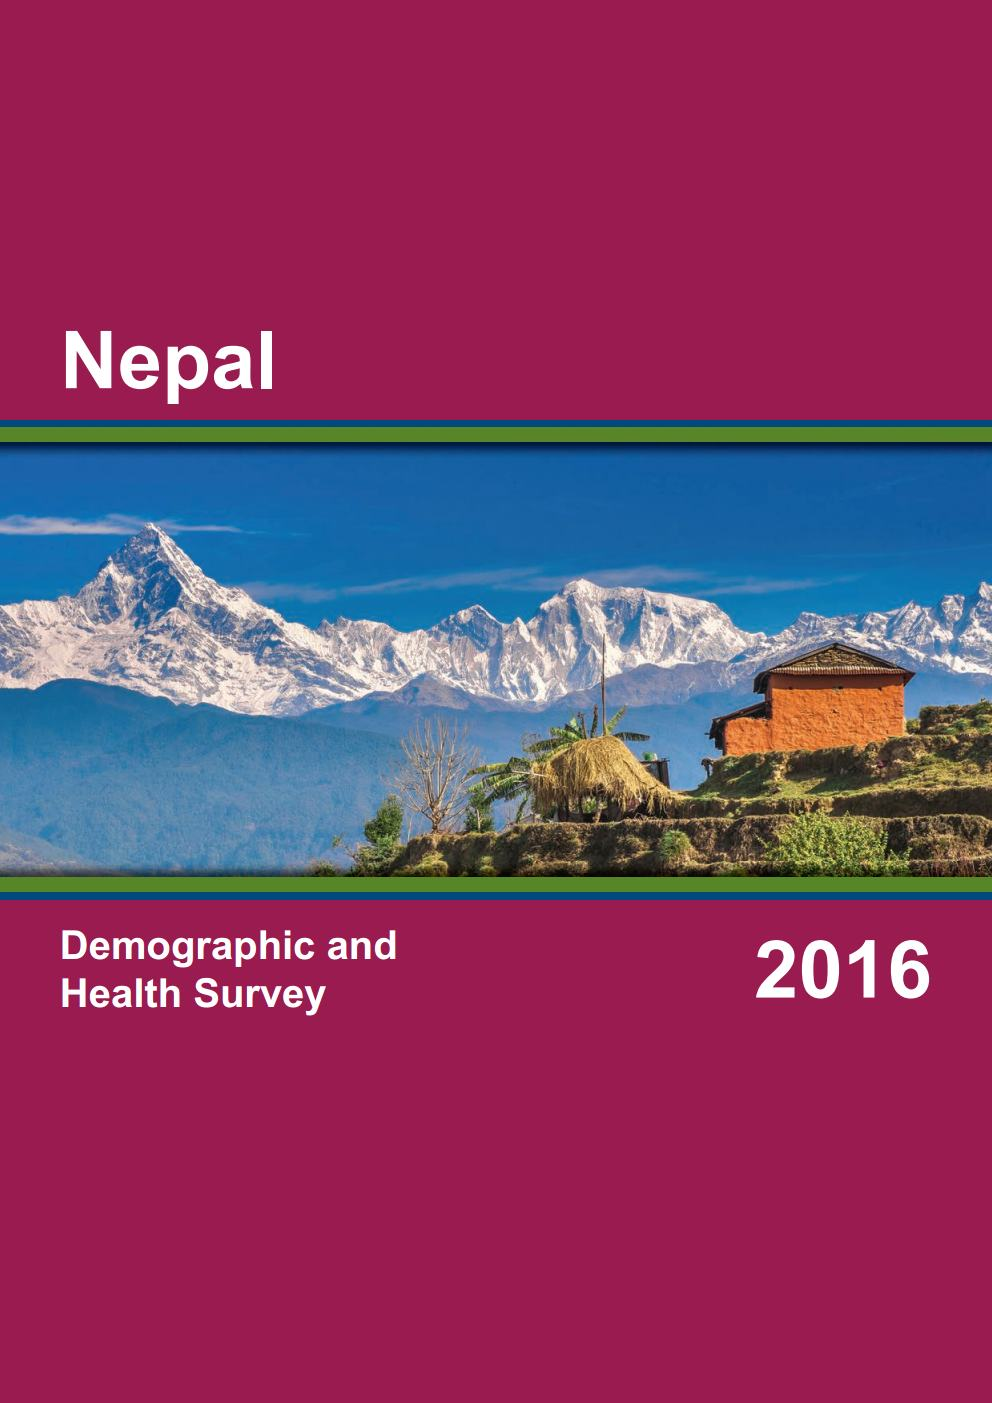 Nepal Demographic and Health Survey (2016 NDHS)